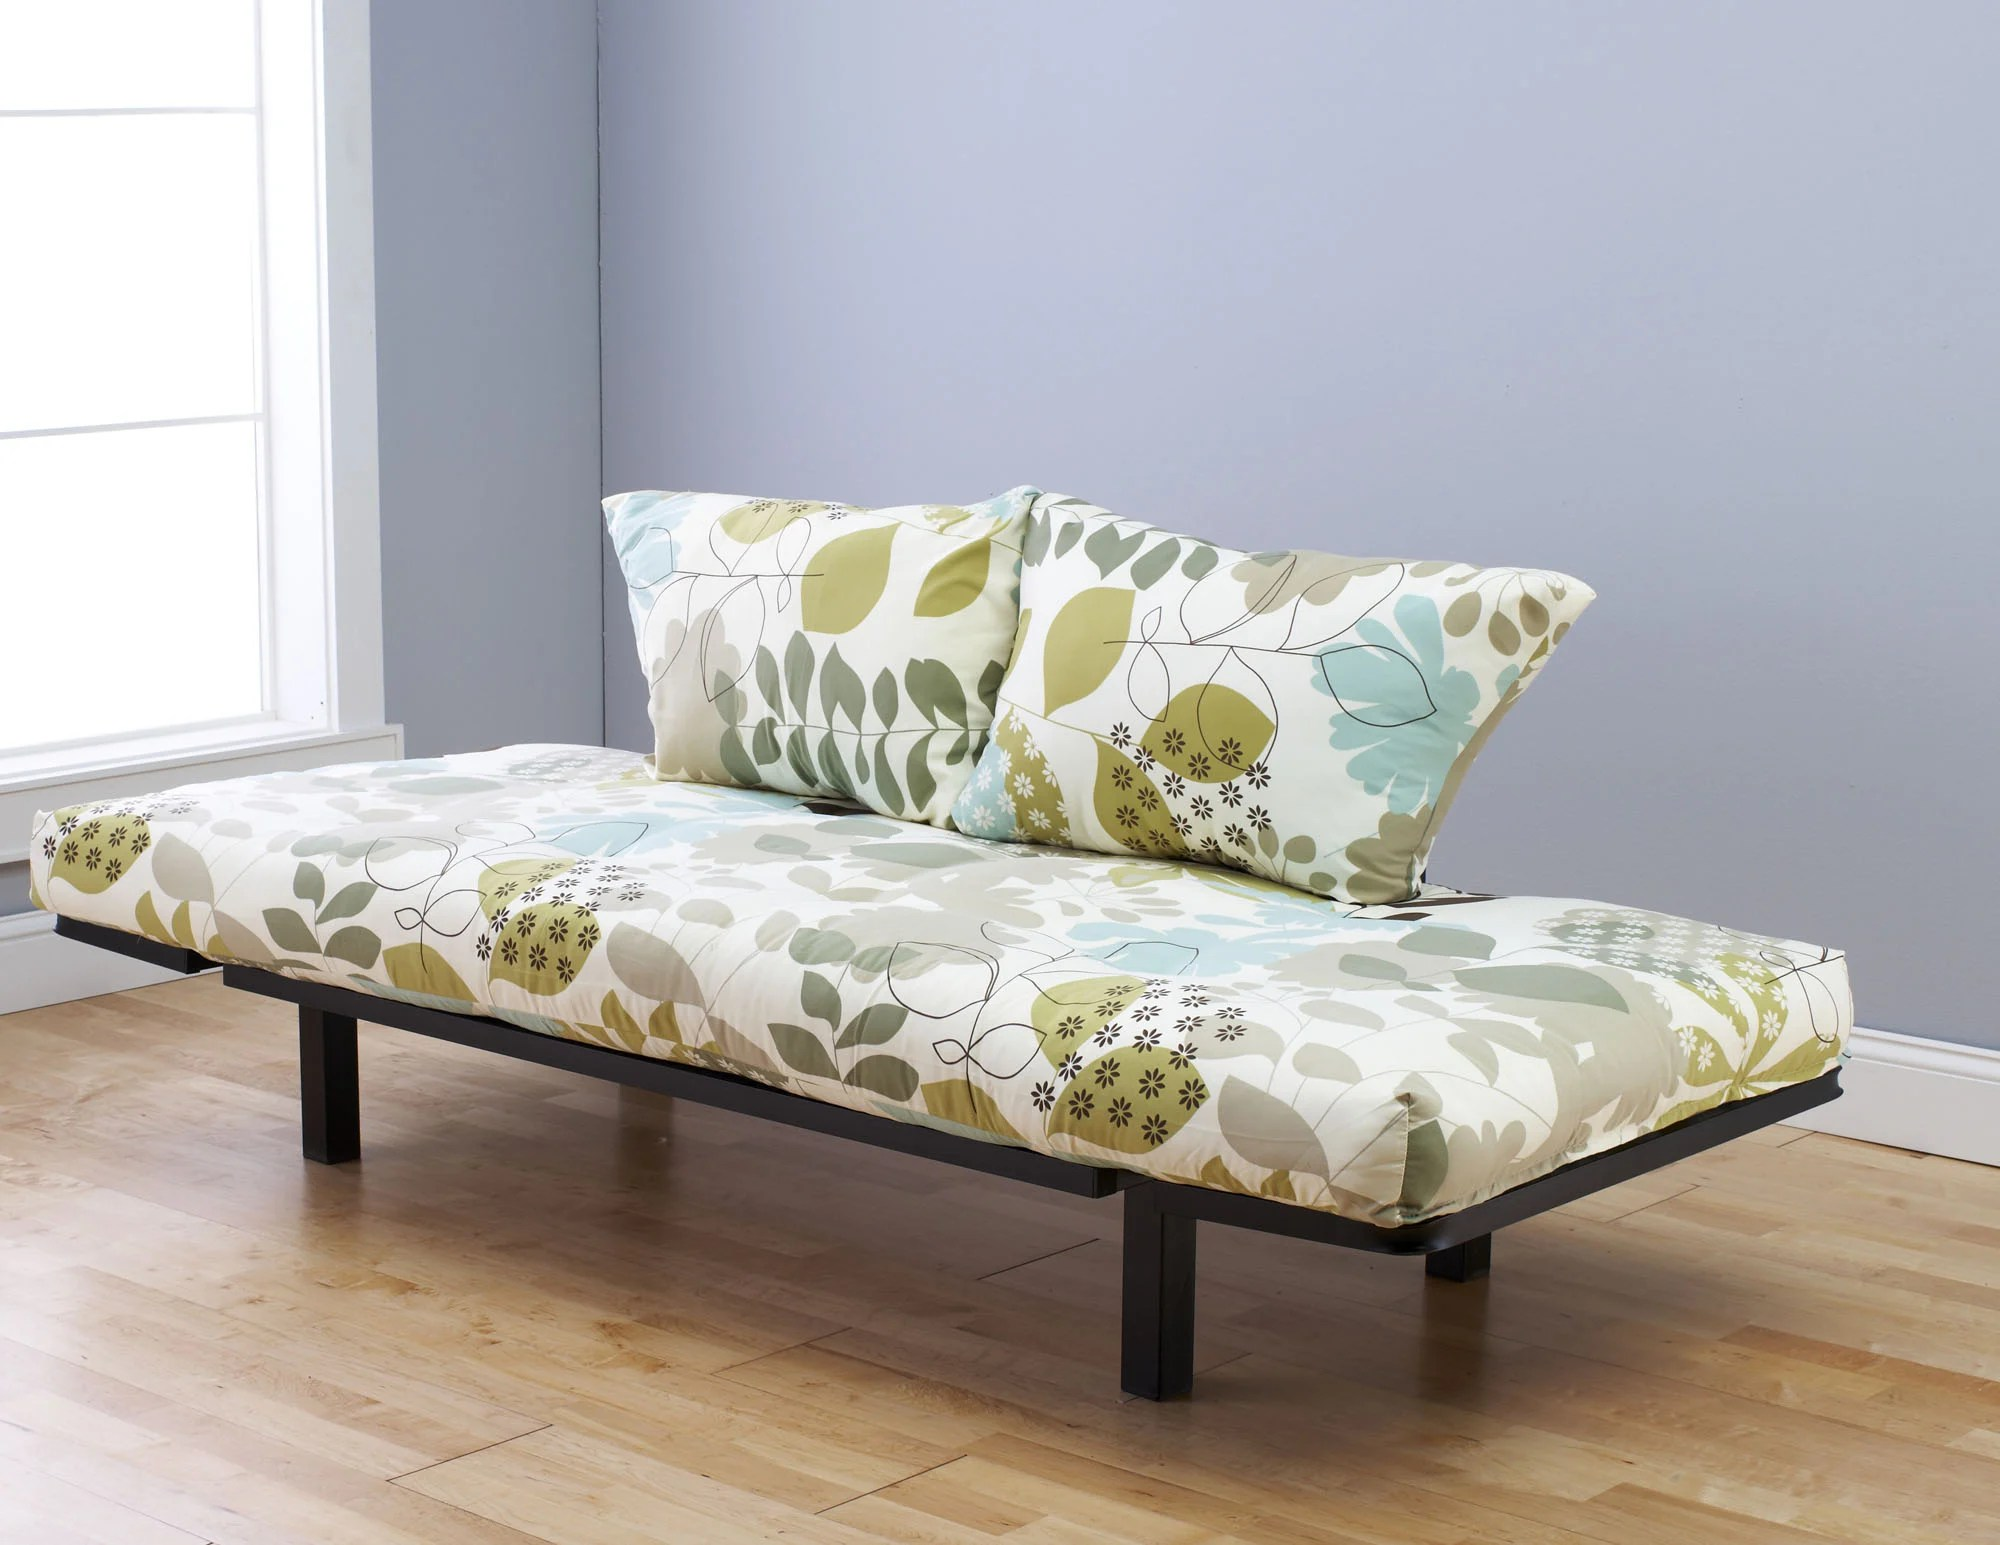 Spacely Futon DaybedLounger With Mattress English Garden